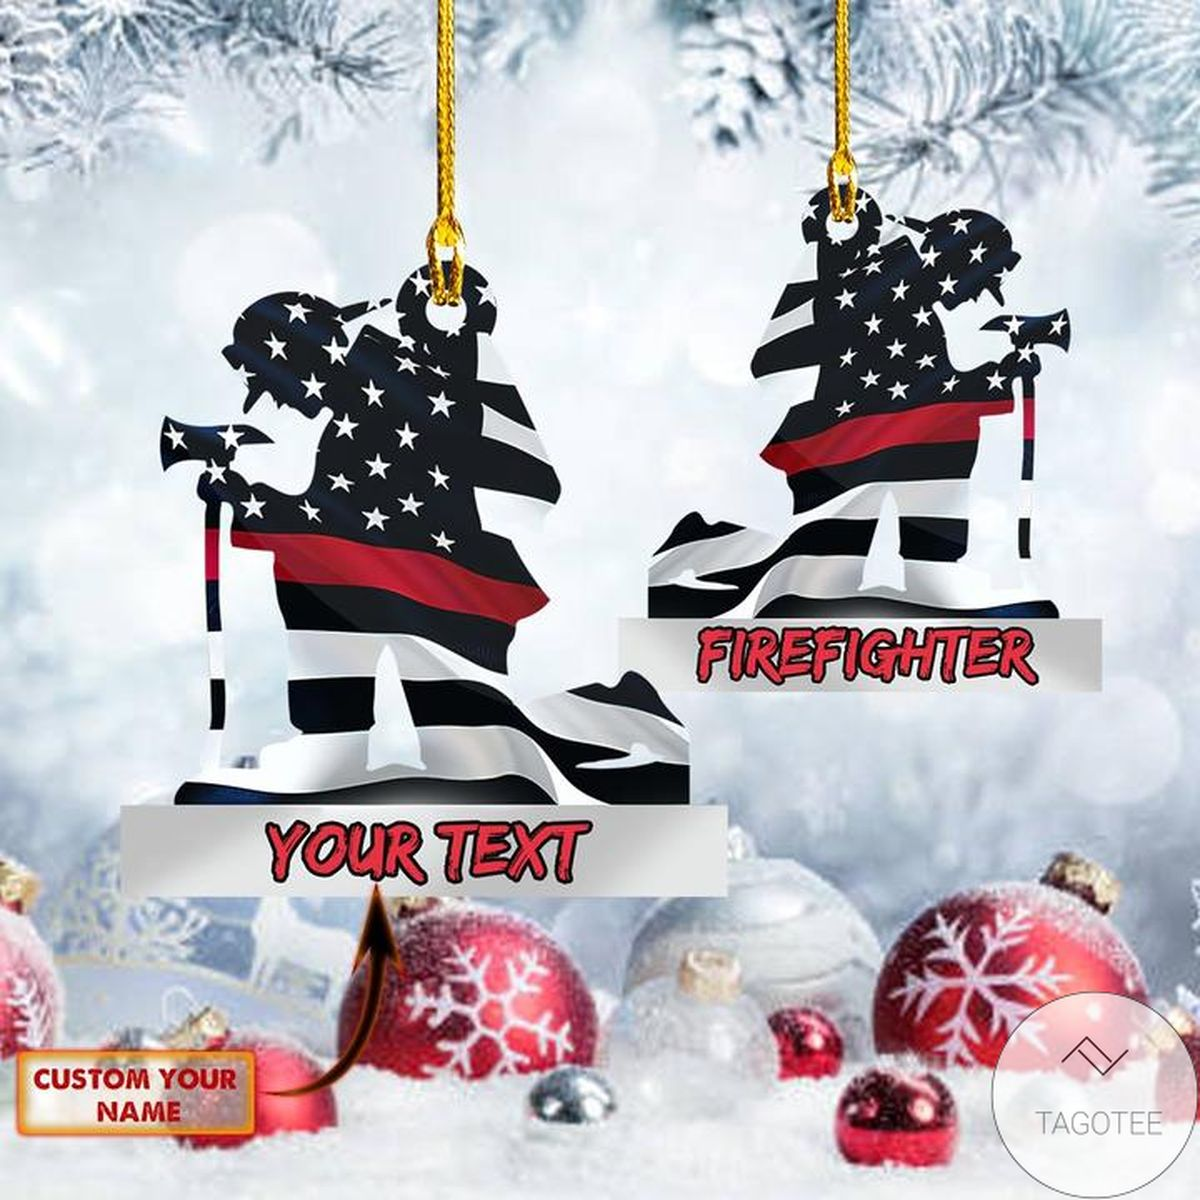 Firefighter Us Flag Shaped Ornament